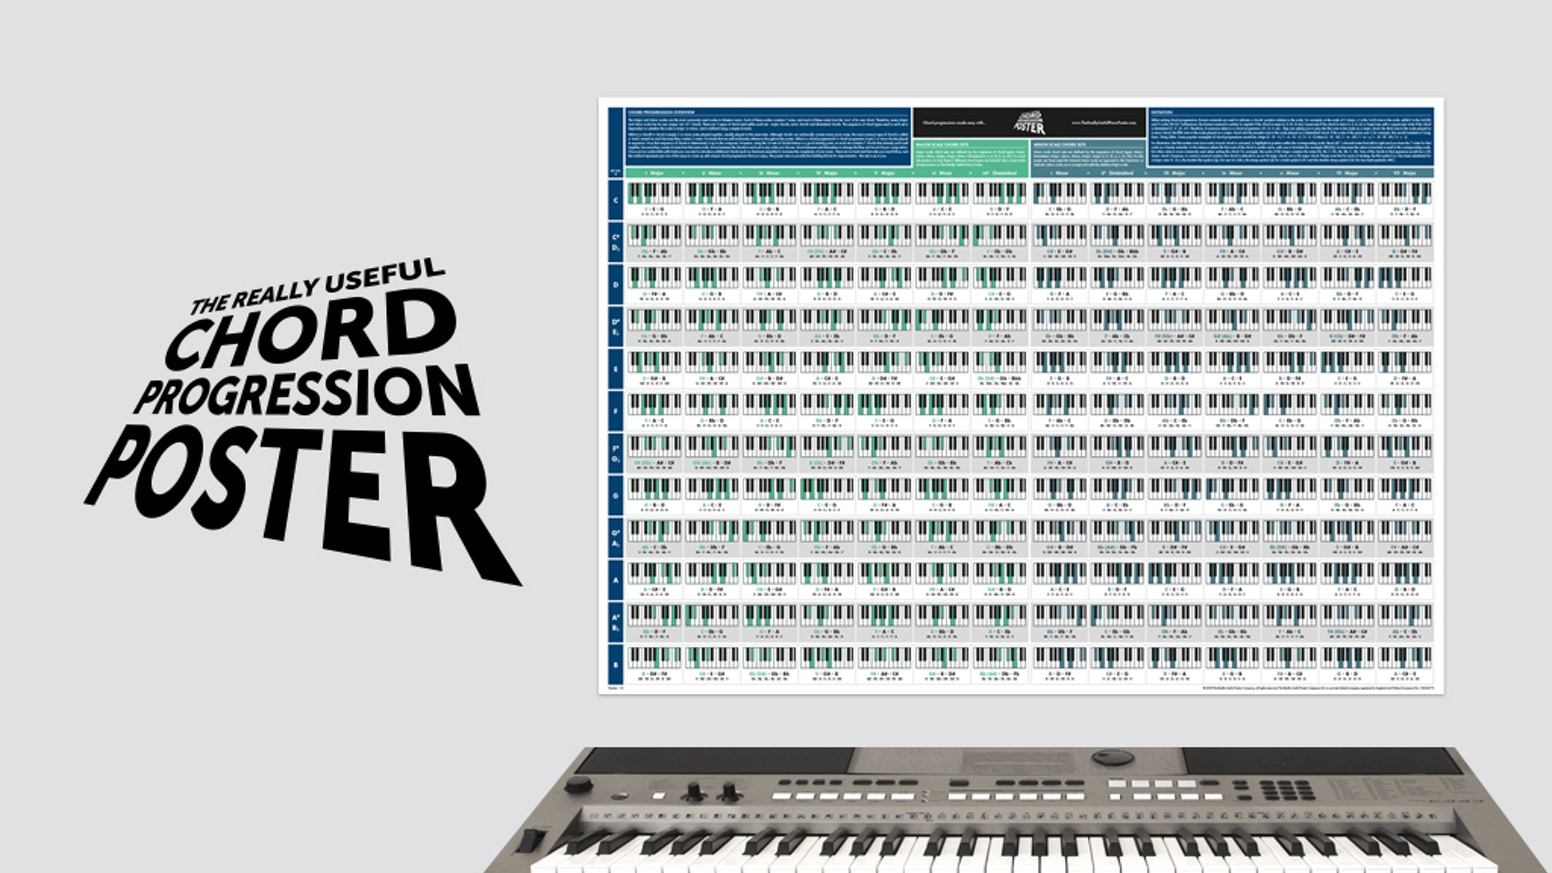 The Really Useful Chord Progression Poster Makes Playing Progressions And Composing Music Easier More